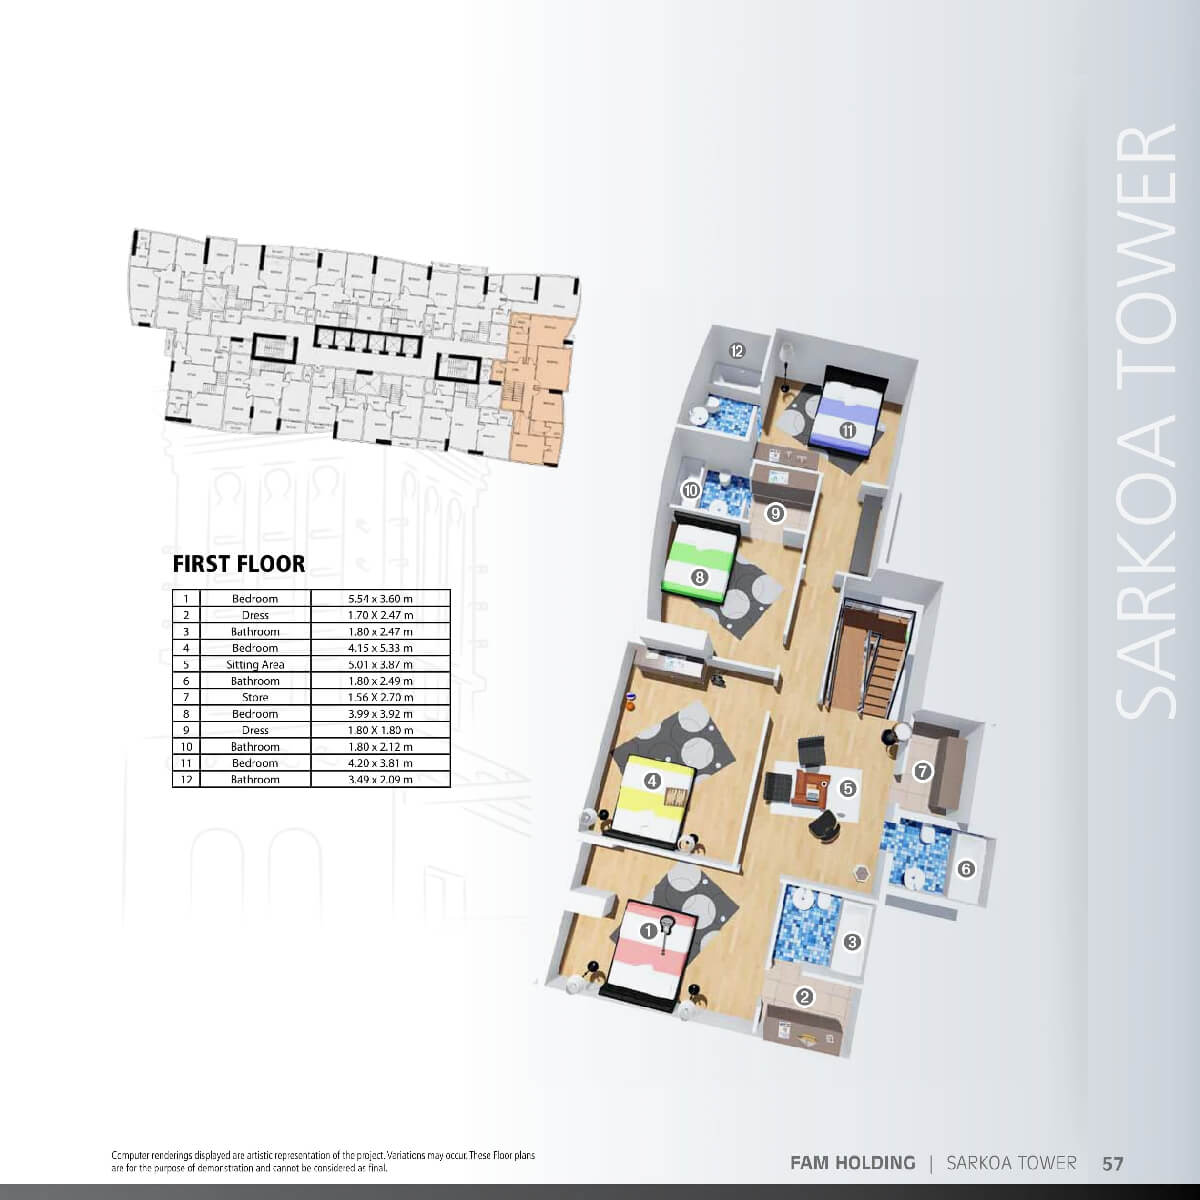 Planning of the apartment 4BR, 4804.93 in Sarkoa Tower, Sharjah